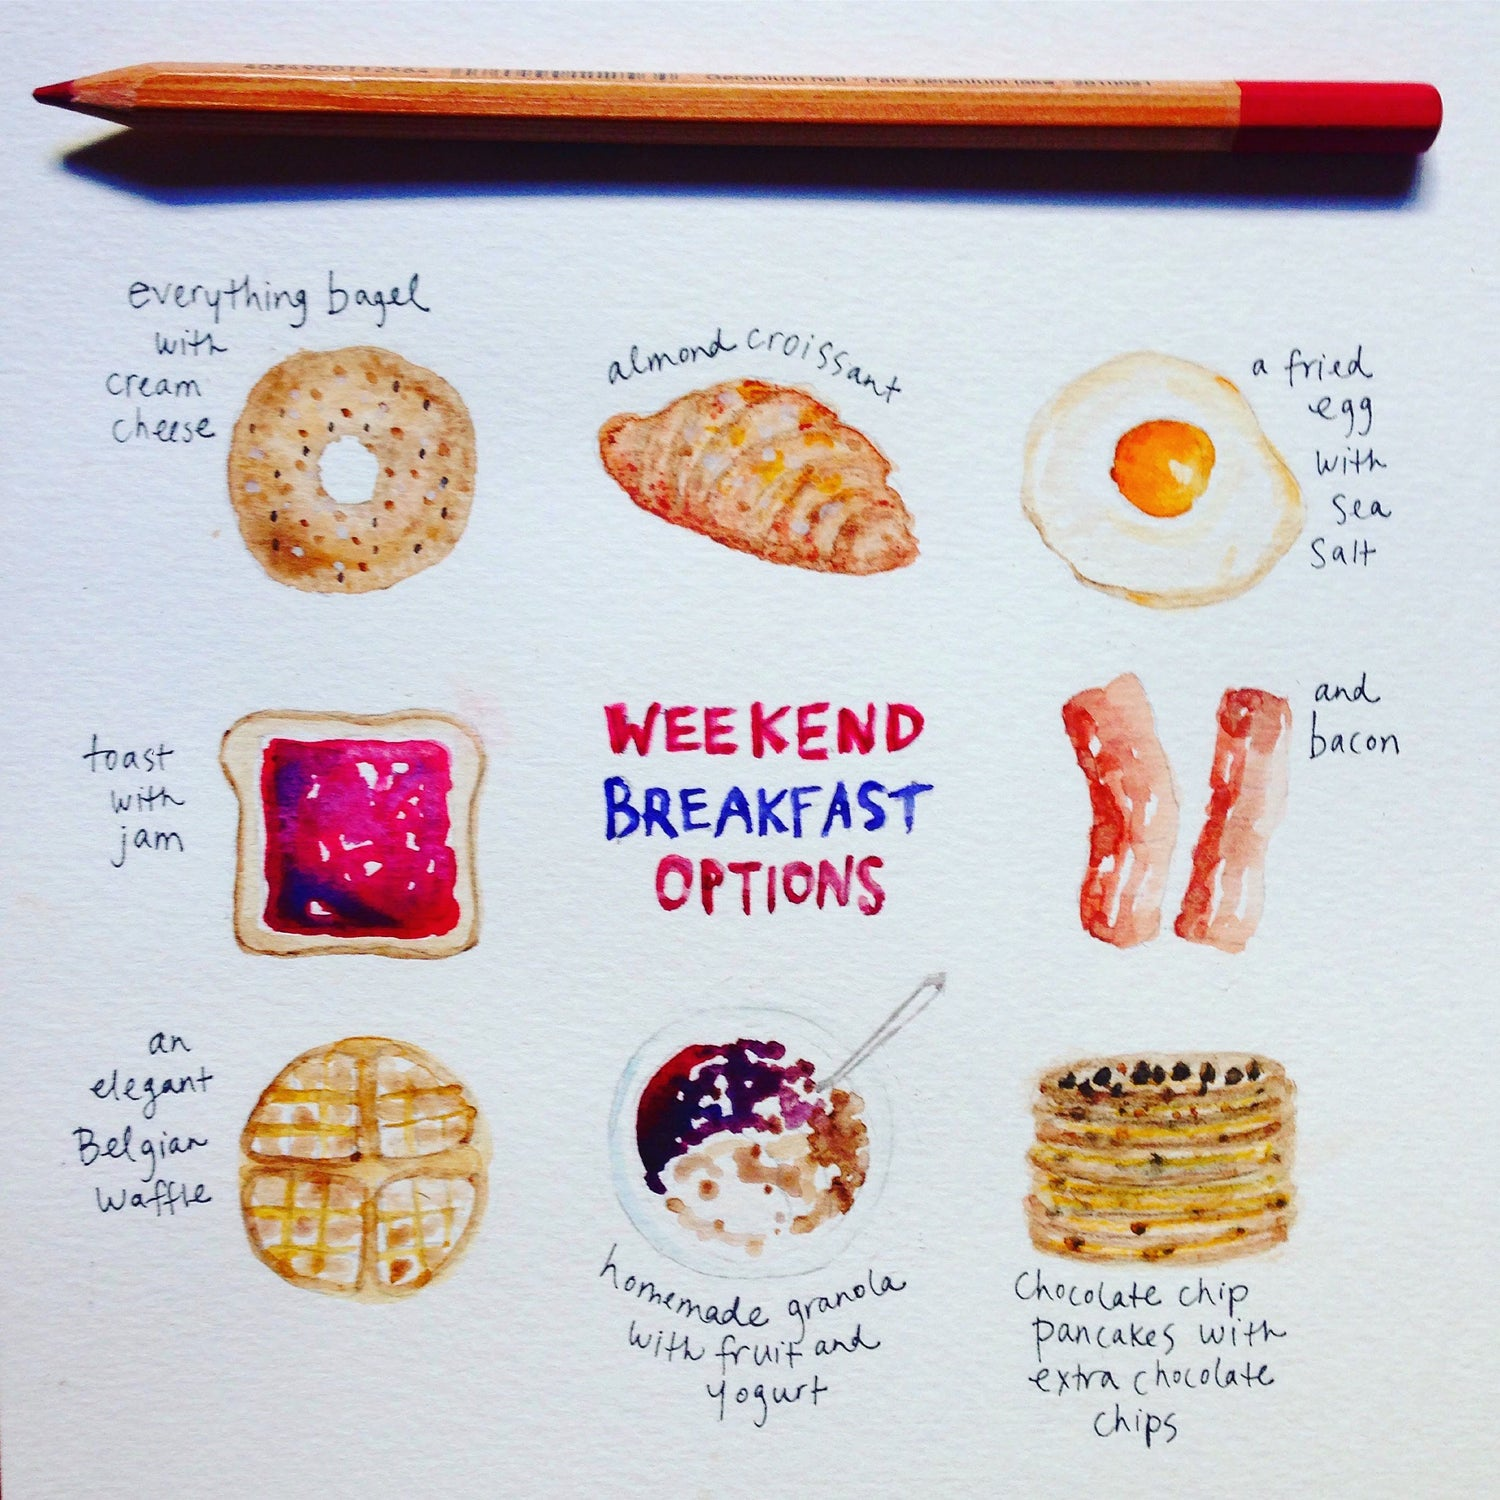 Image of Weekend Breakfast Options